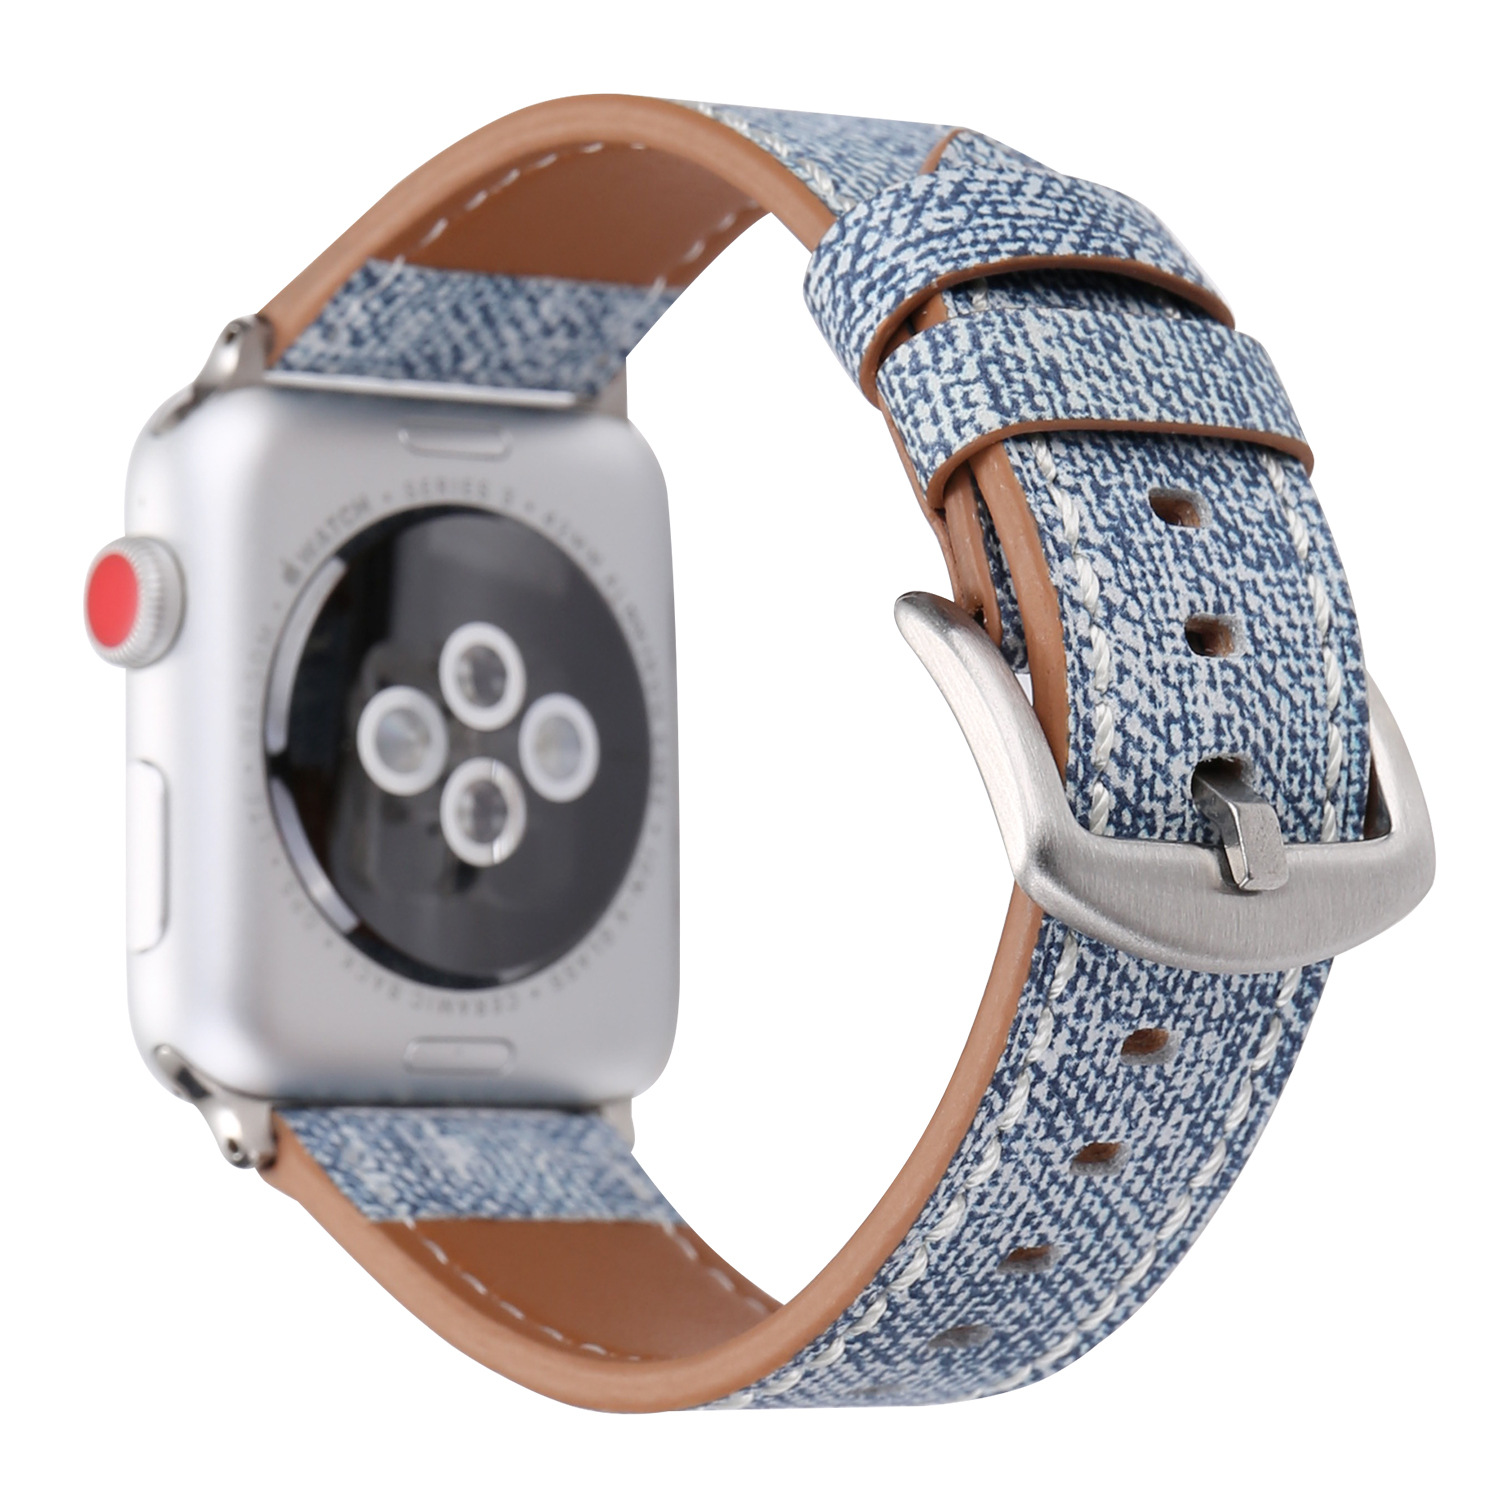 2019 nouveautés denim sangle pour l'apple watch series 4 cuir véritable sangles